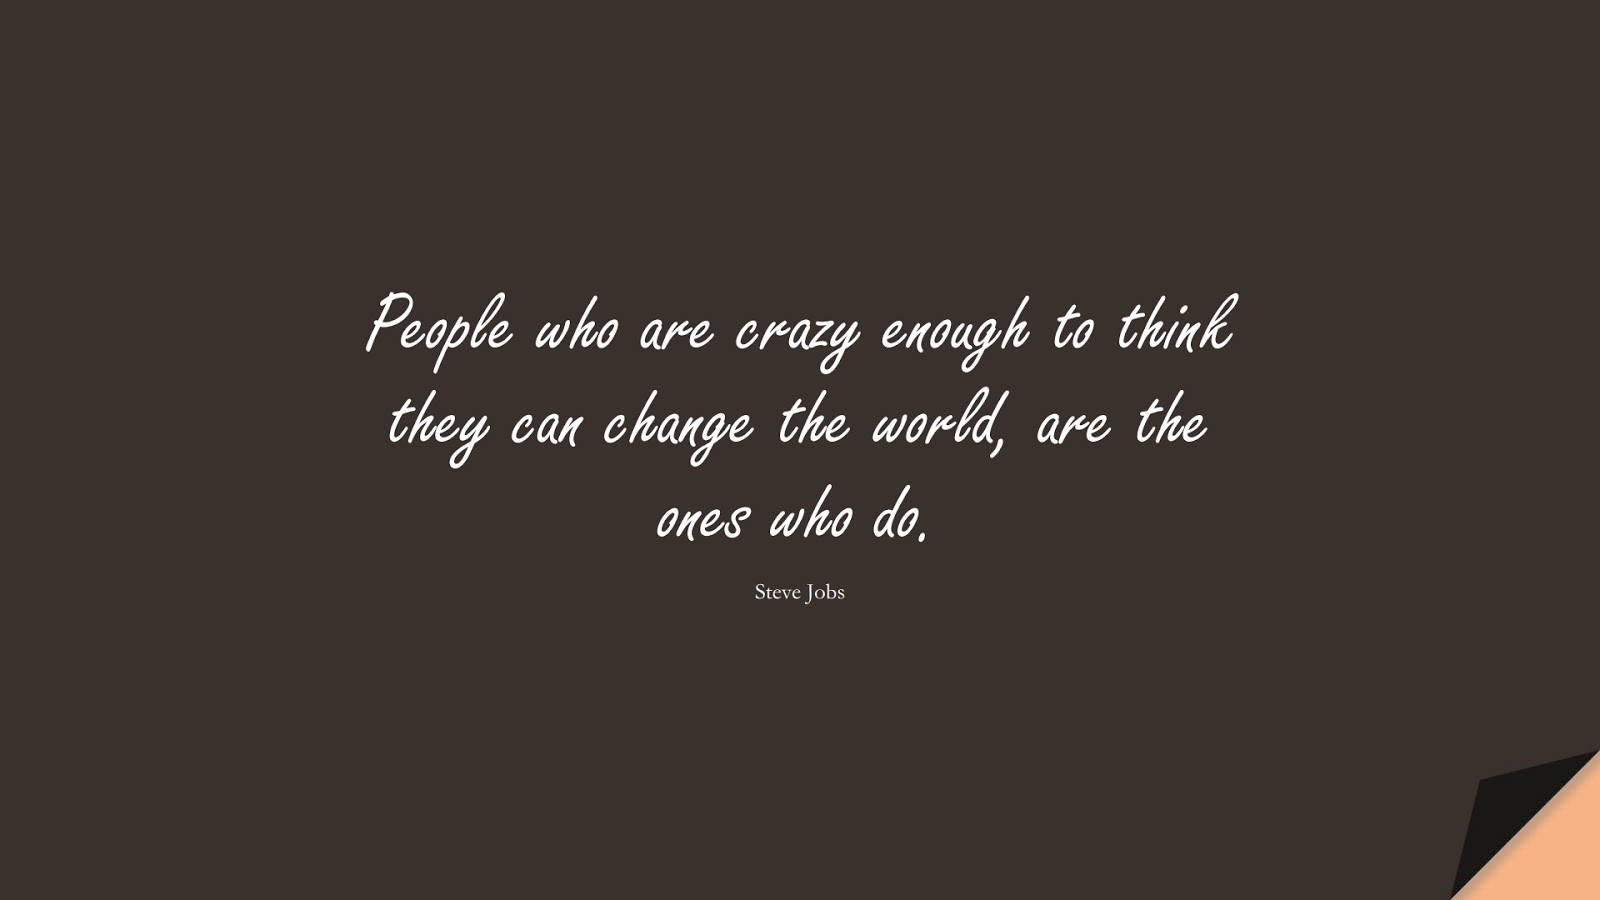 People who are crazy enough to think they can change the world, are the ones who do. (Steve Jobs);  #PositiveQuotes